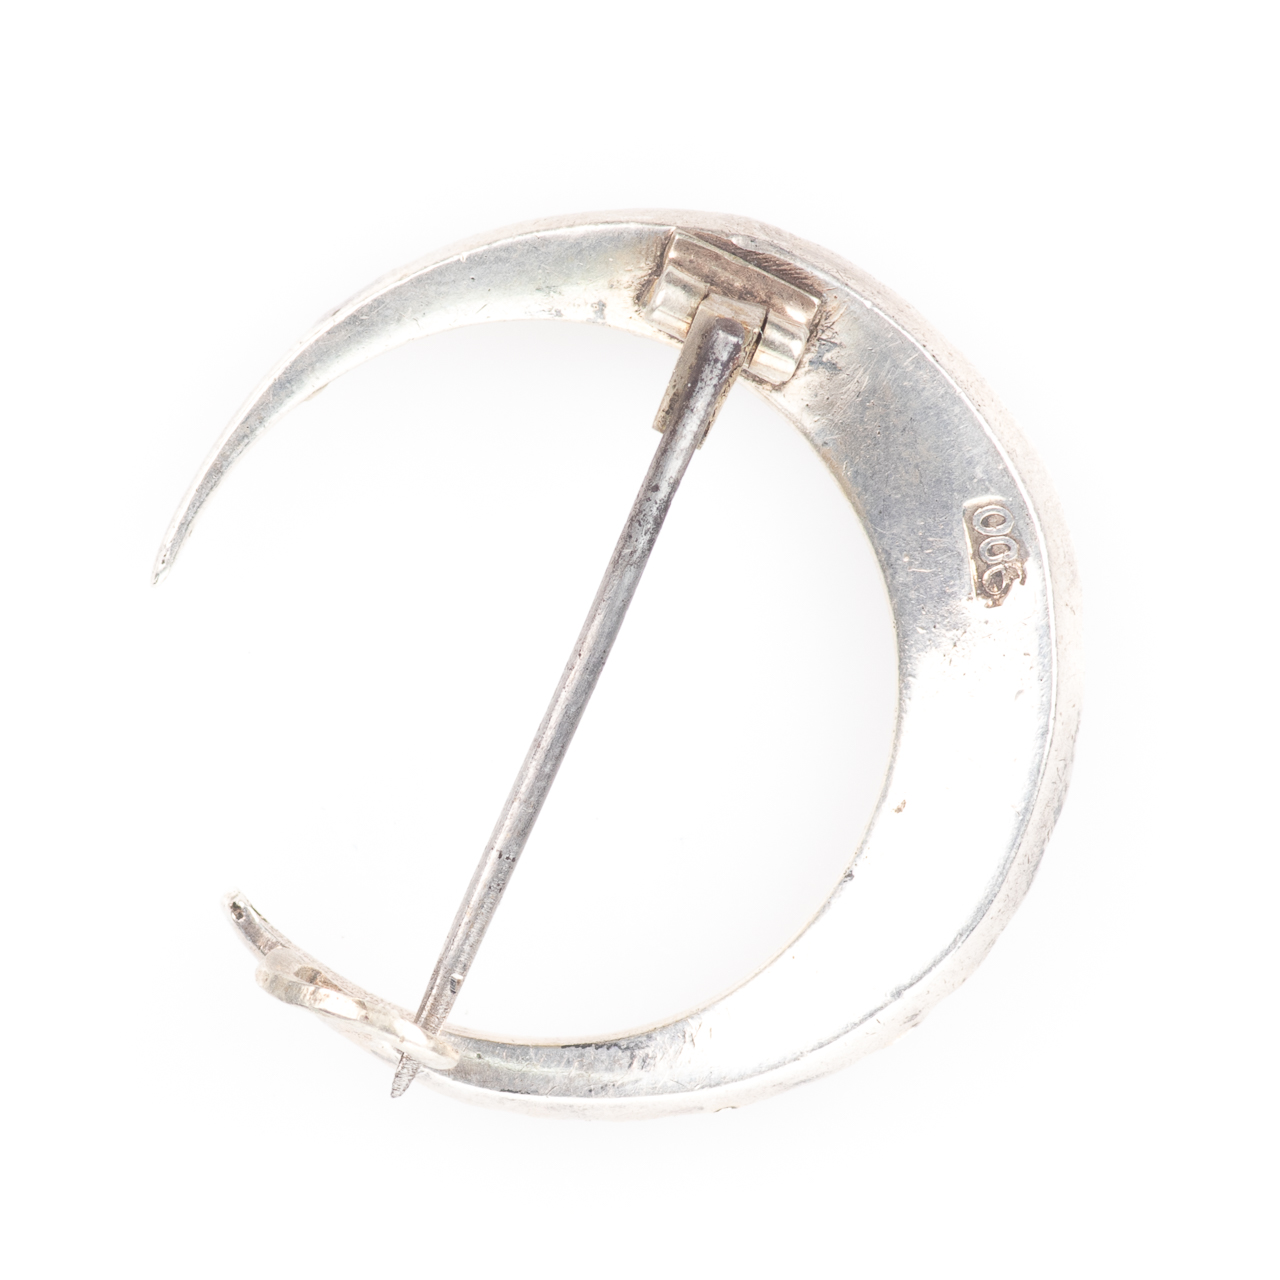 Victorian 900 Silver Paste Crescent Moon Brooch - Image 3 of 5